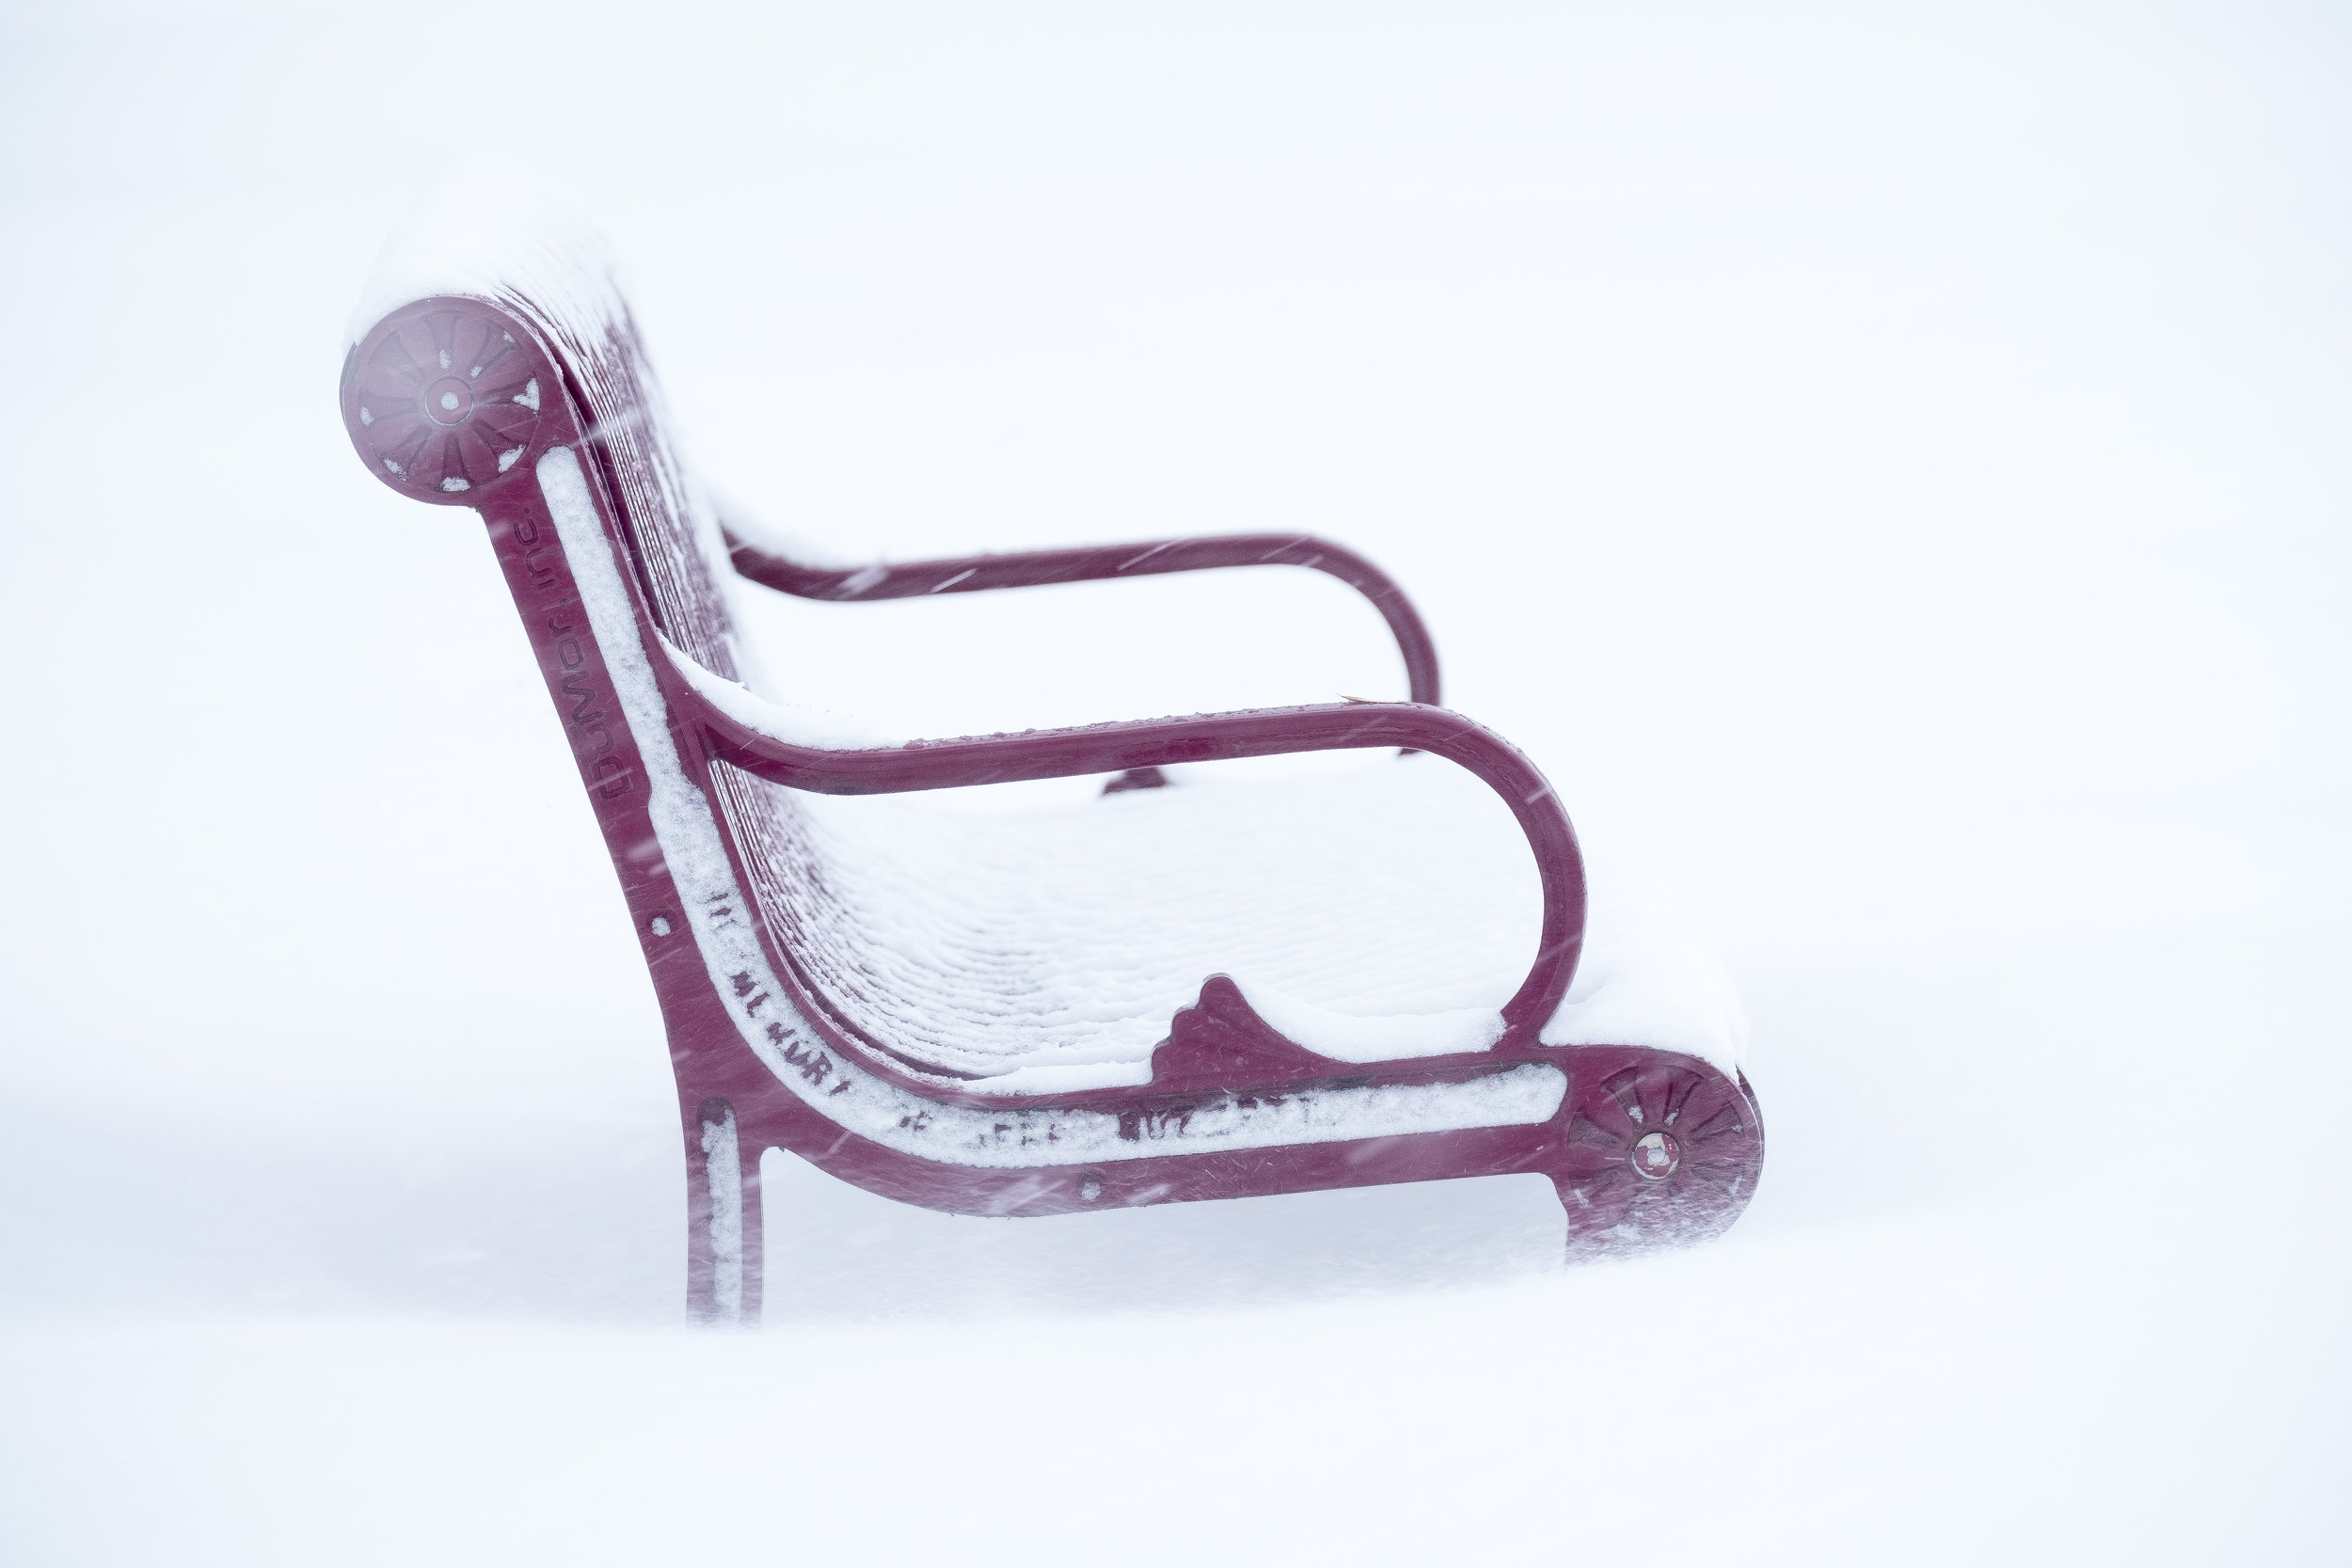 Bench in Snow.jpg